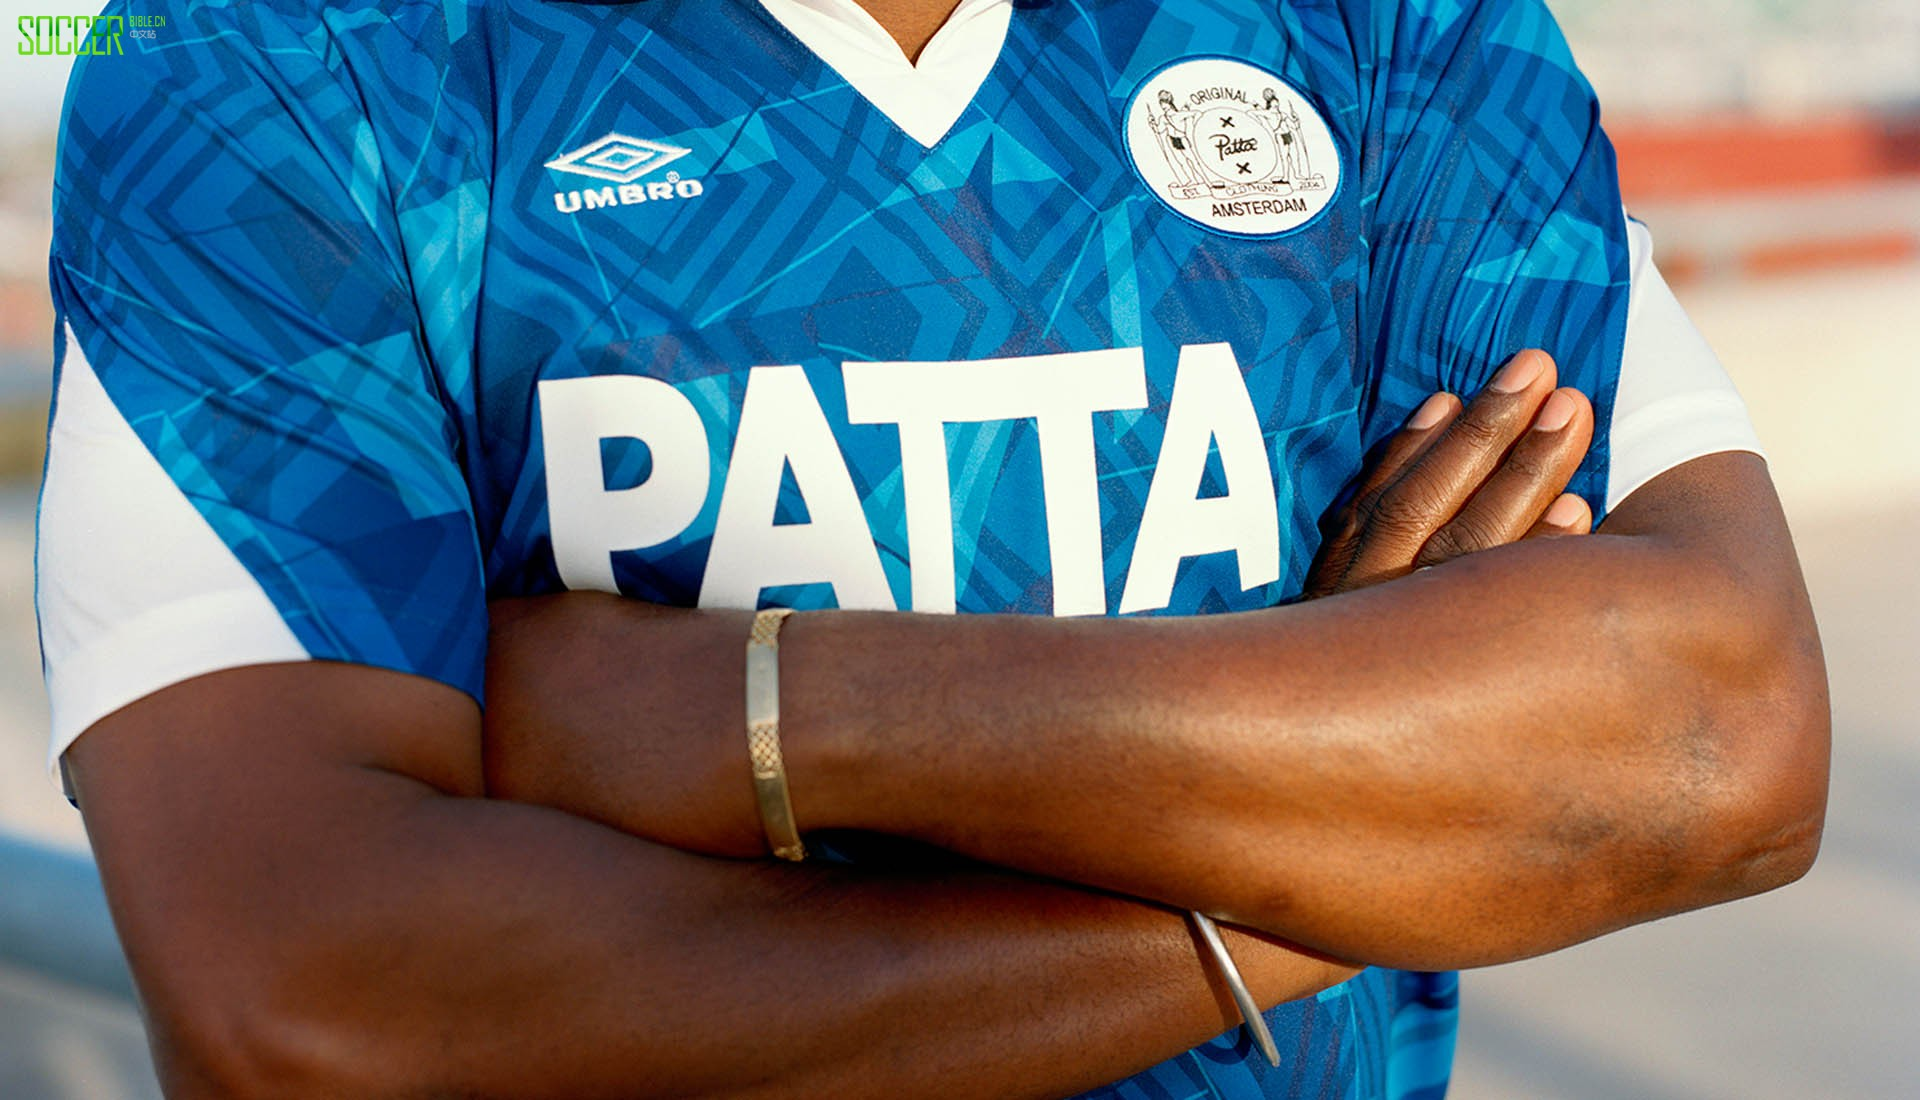 patta-umbro-second-collab_0002_layer-3